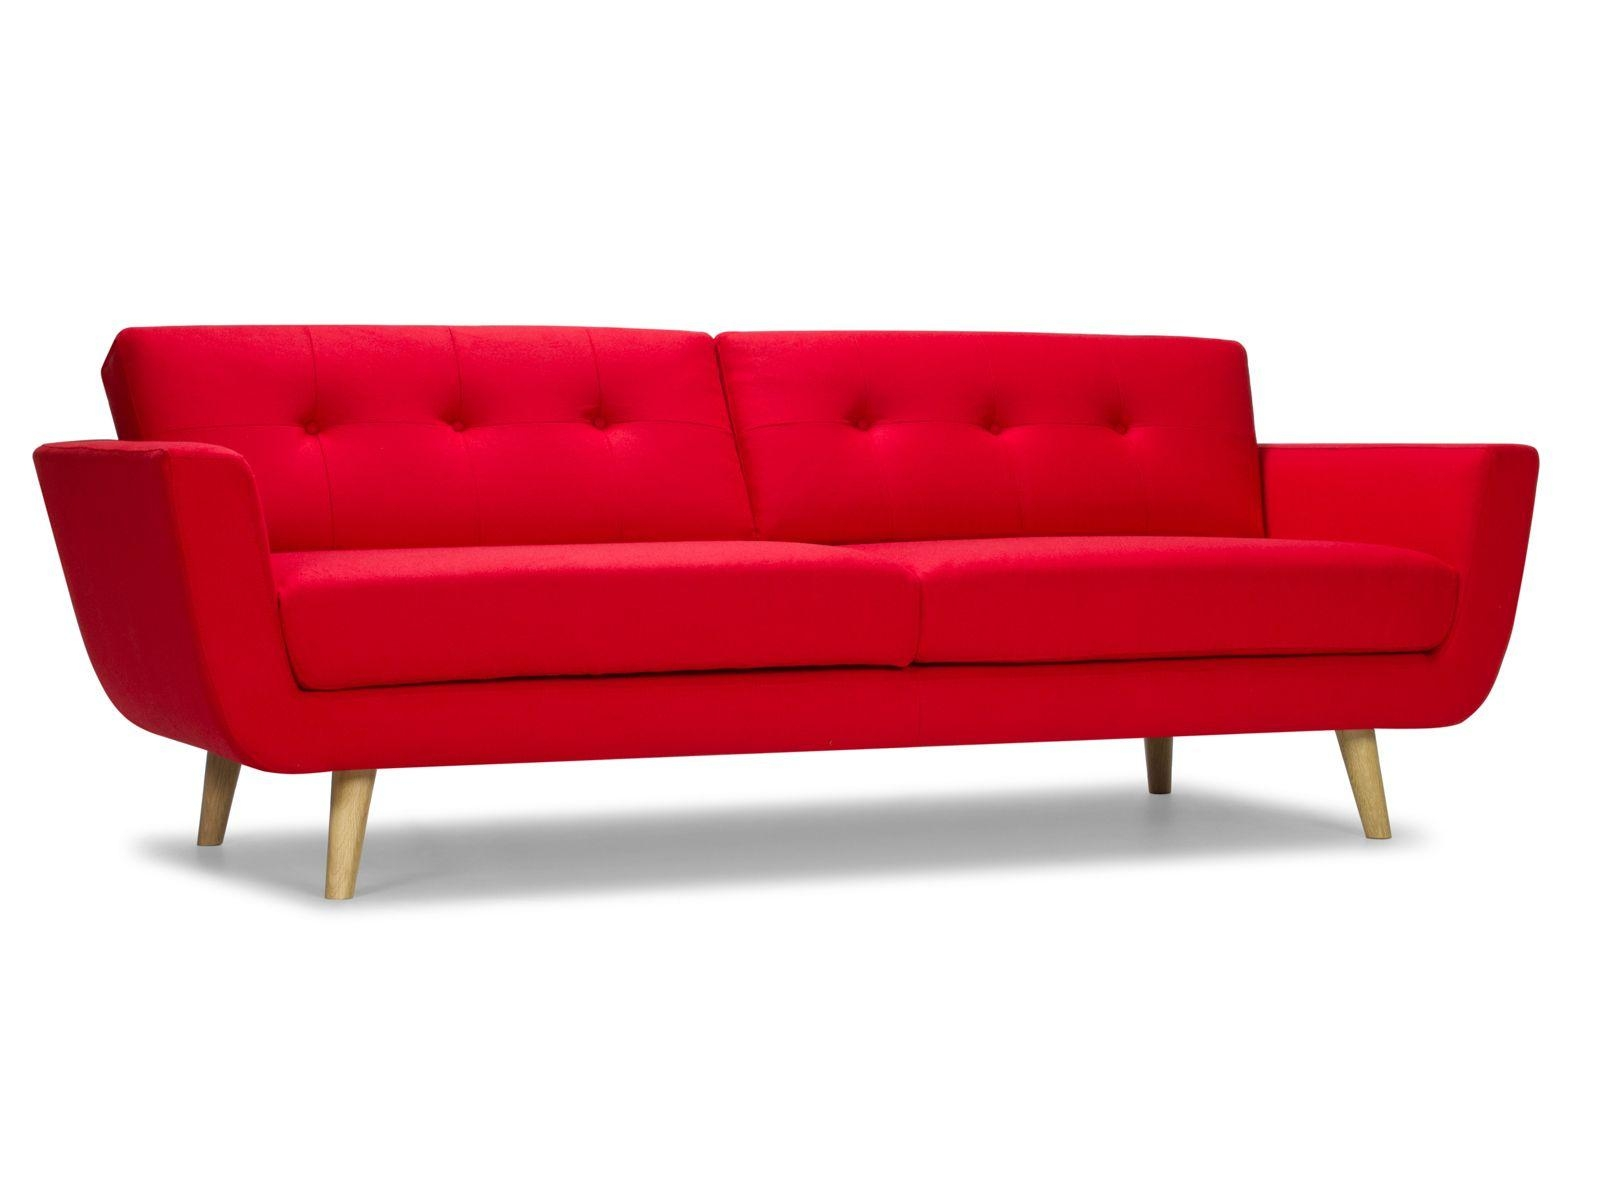 20 photos retro sofas and chairs sofa ideas Retro loveseats